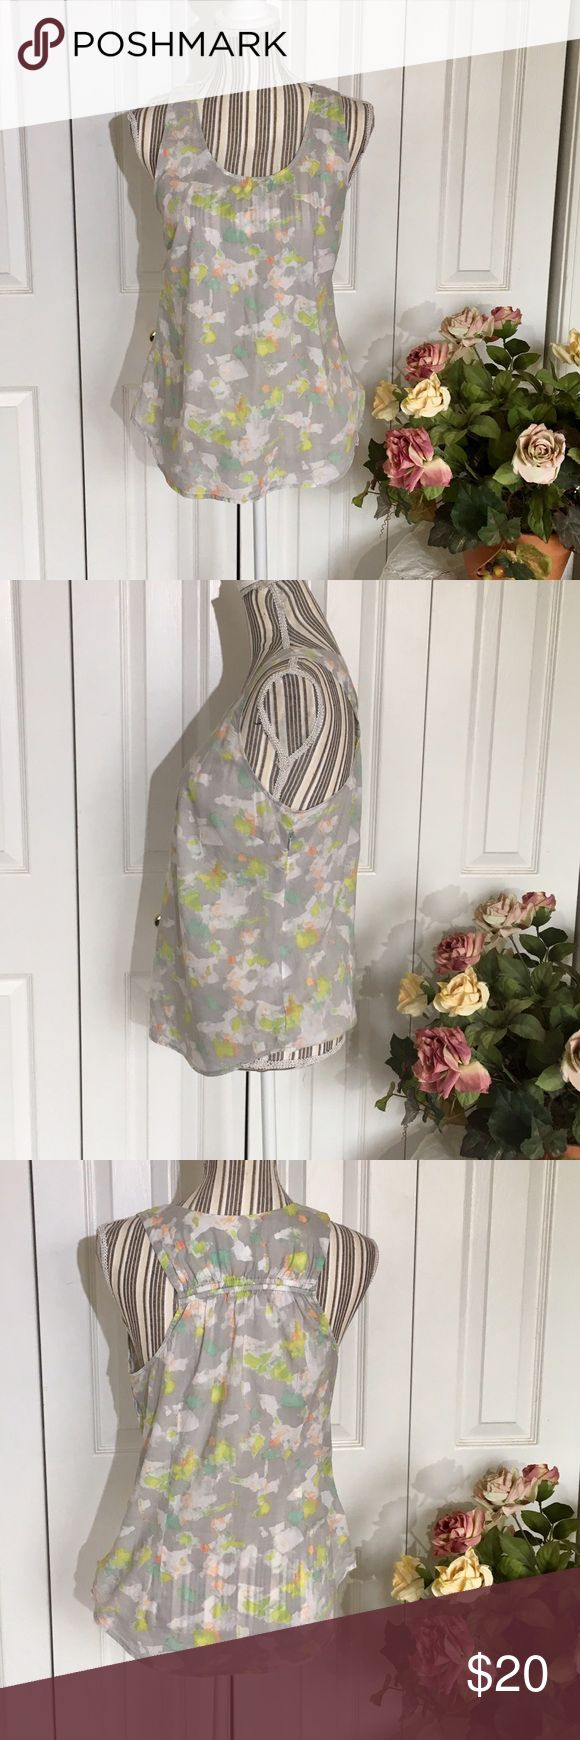 J.CREW FACTORY Dainty Watercolor Cotton Tank This J. Crew Factory watercolor tank is 100% cotton with elastic smocking across the back shoulders for extra comfort and fit.  In grey with pastel watercolor flowers. Dainty and beautiful. Hidden side zip.  Size 4, measurements are approximate: - 18 inches underarm to underarm  - 24.5 inches shoulder to hem in front; 25 inches shoulder to hem in back  No holes, rips, stains, pilling. J. Crew Factory Tops Tank Tops